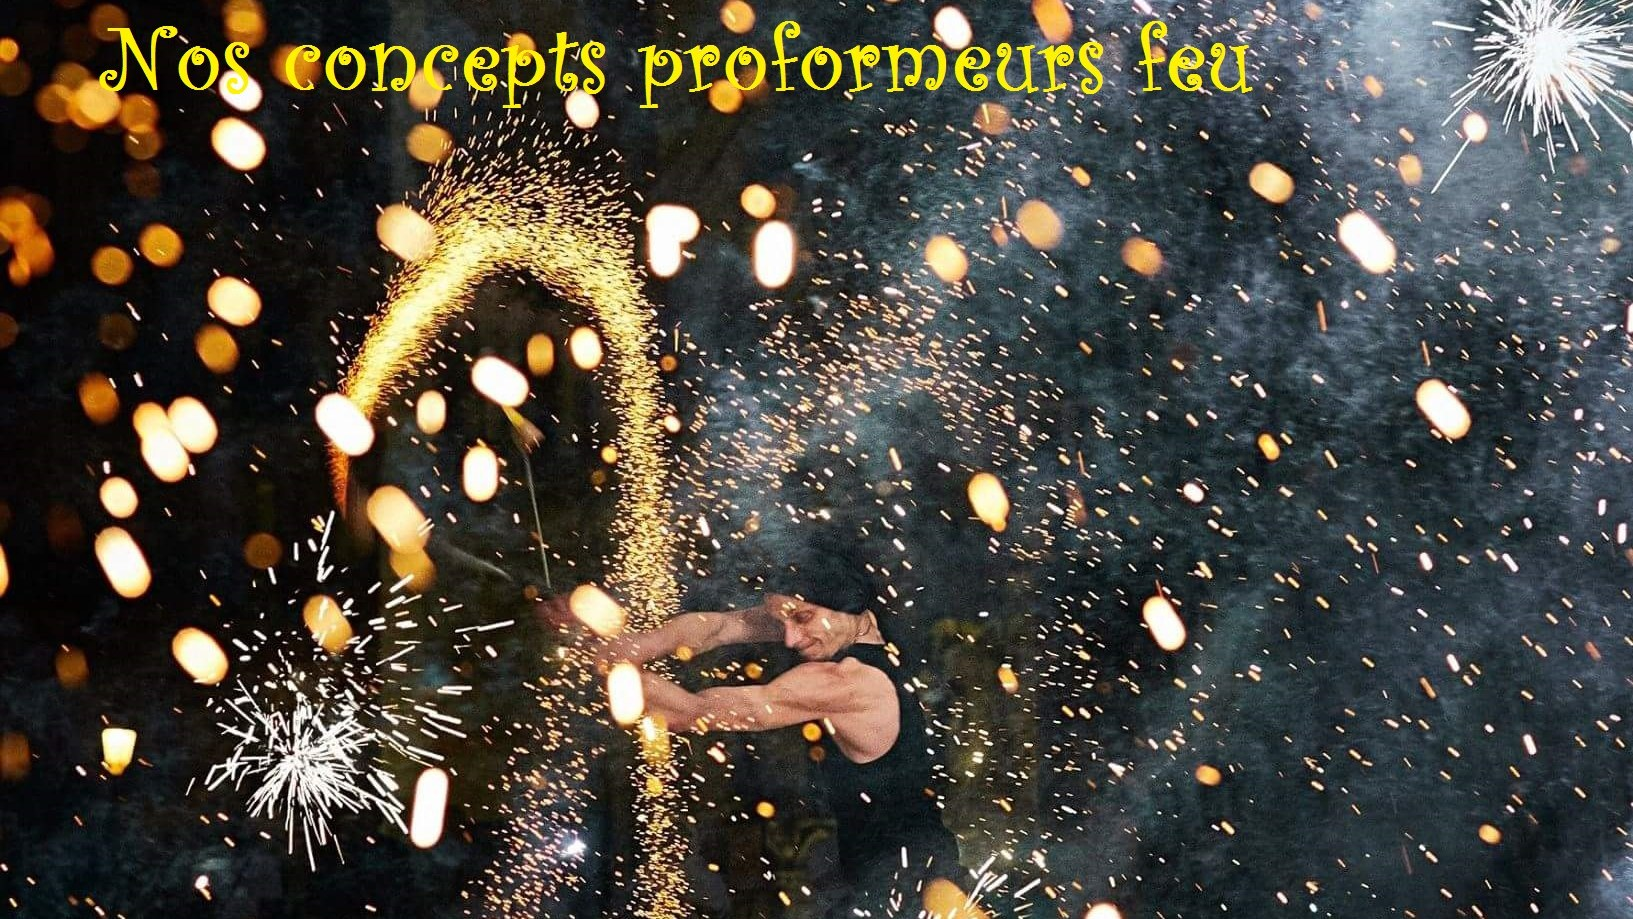 angels prod-annimation-spectacle-evenement